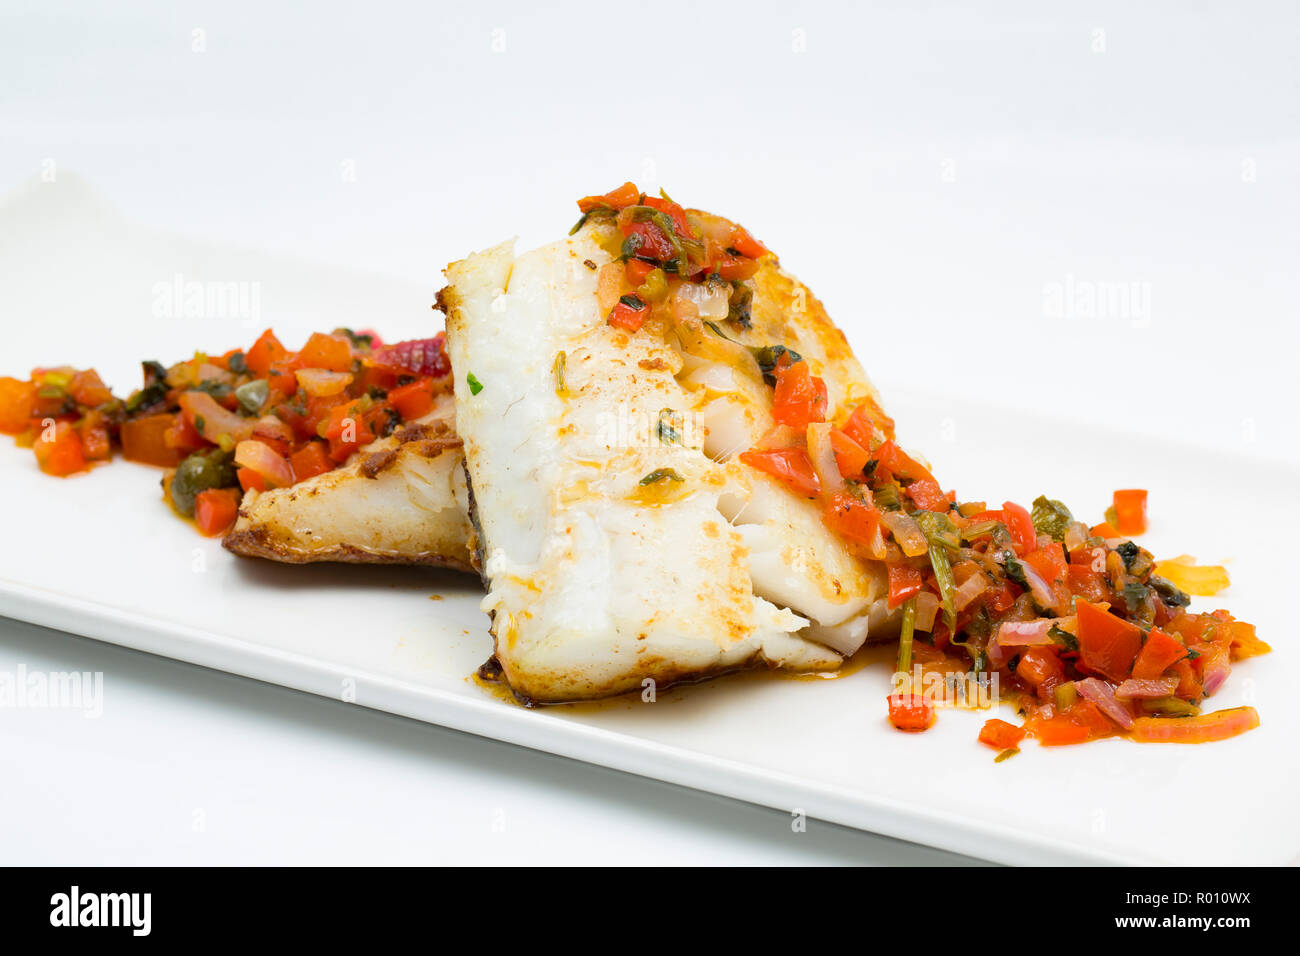 A homecooked pollack fillet, Pollachius pollachius, that has been pan fried and served with peppers, onions, tomatoes and capers. The pollack was caug - Stock Image